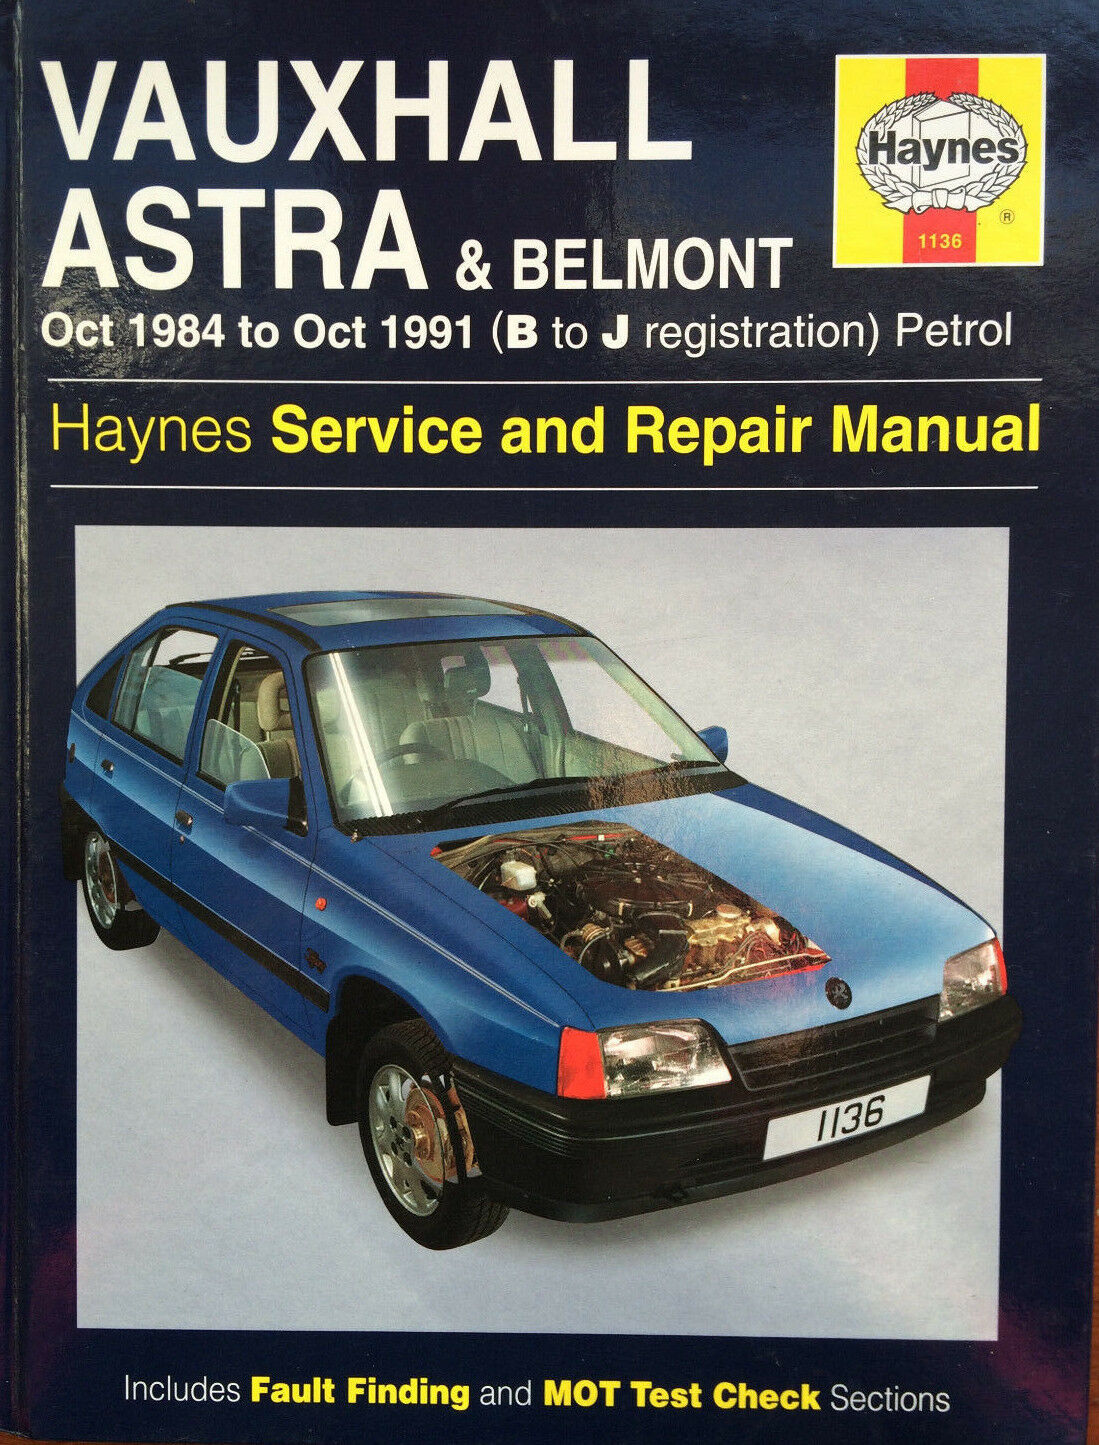 Vauxhall Astra & Belmont 84 - 10/91 petrol, Haynes Service & Repair Manual  1 of 1Only 1 available ...